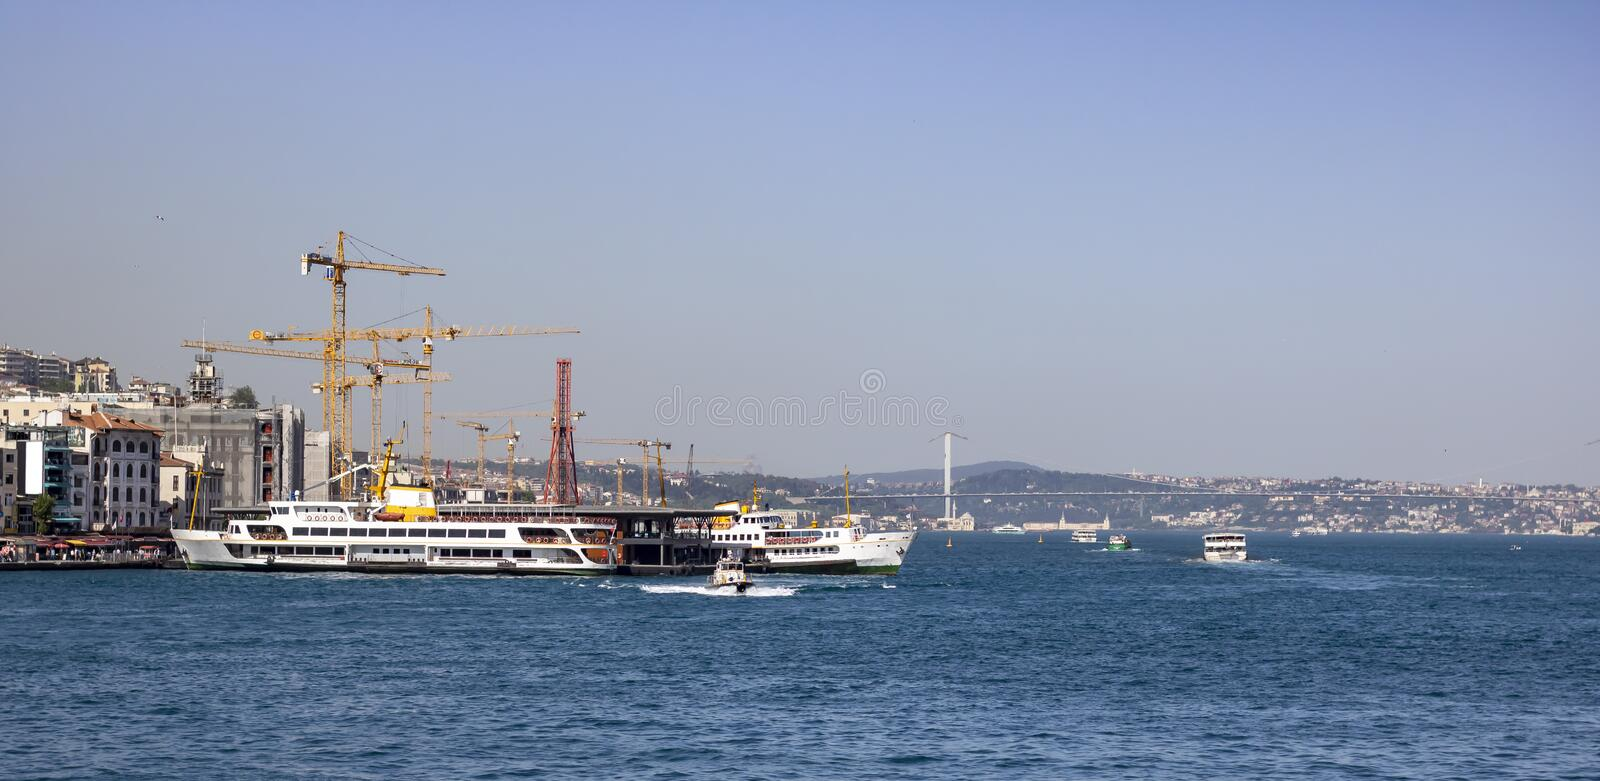 Ferry docked at the pier of Karaköy. Back side of construction work. Ferry docked at the pier of Karaköy. Back side of construction work, tourism stock images